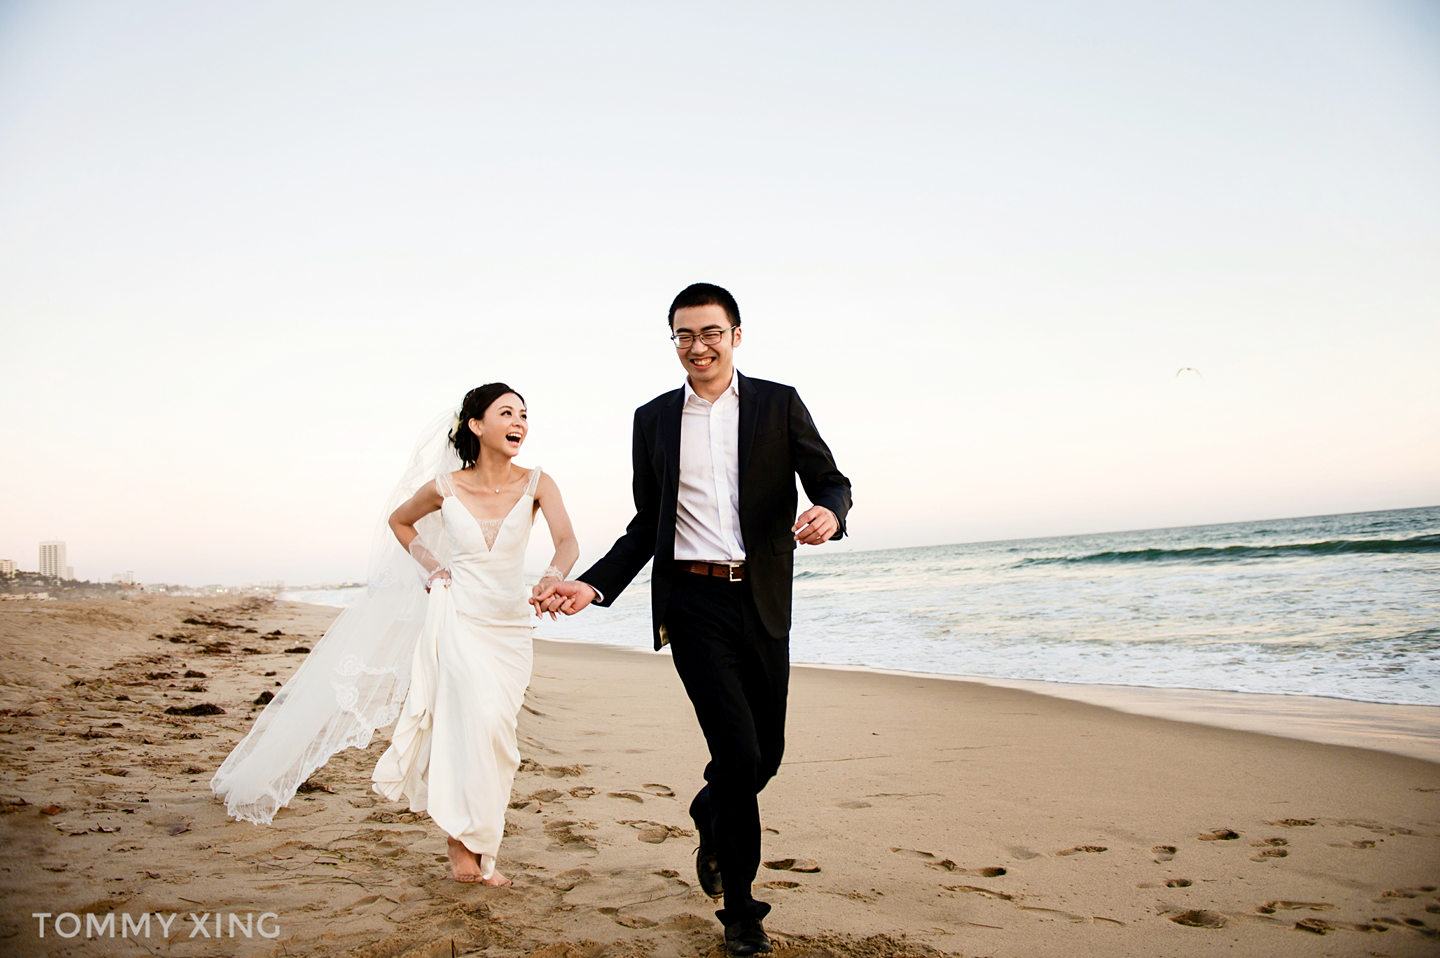 Los Angeles per-wedding 洛杉矶婚纱照 by Tommy Xing Photography 25.jpg